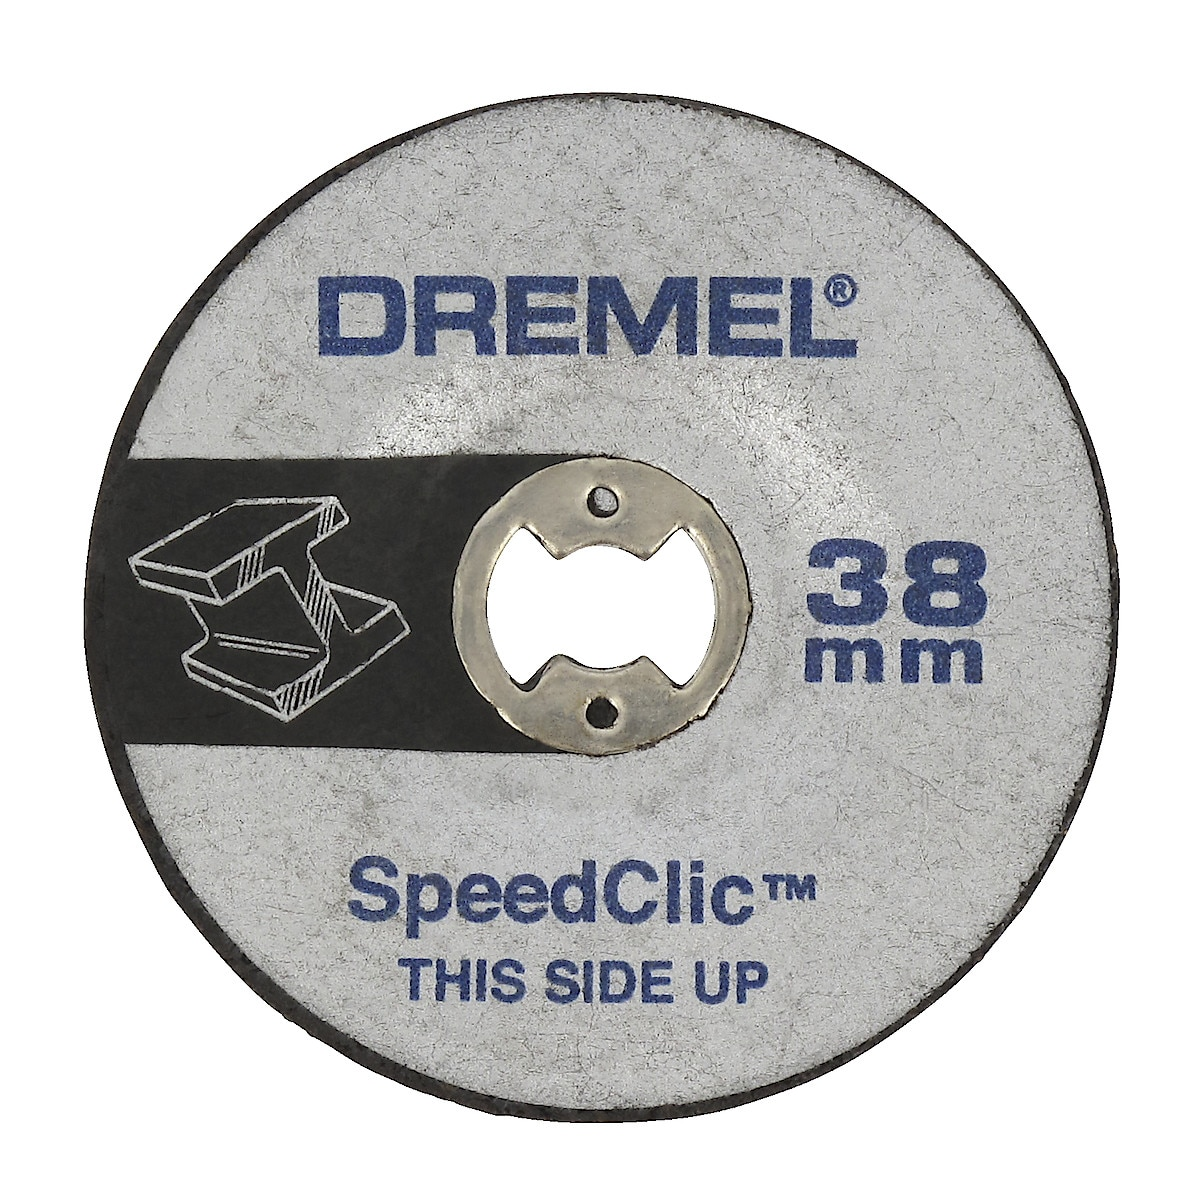 Slipskivor SpeedClic, Dremel